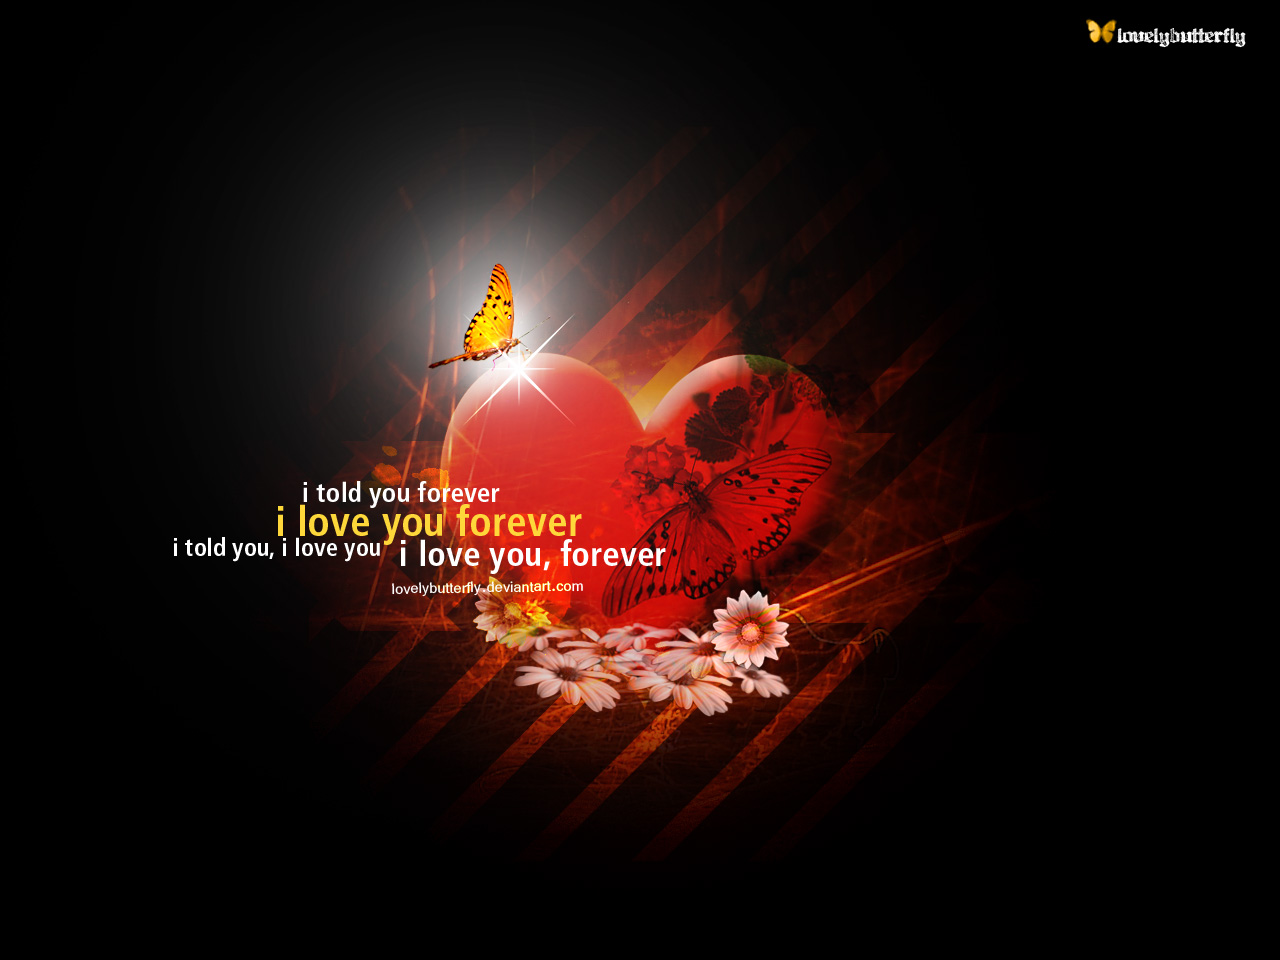 Love Forever Wallpapers : 1280x960 I love you forever desktop Pc and Mac wallpaper